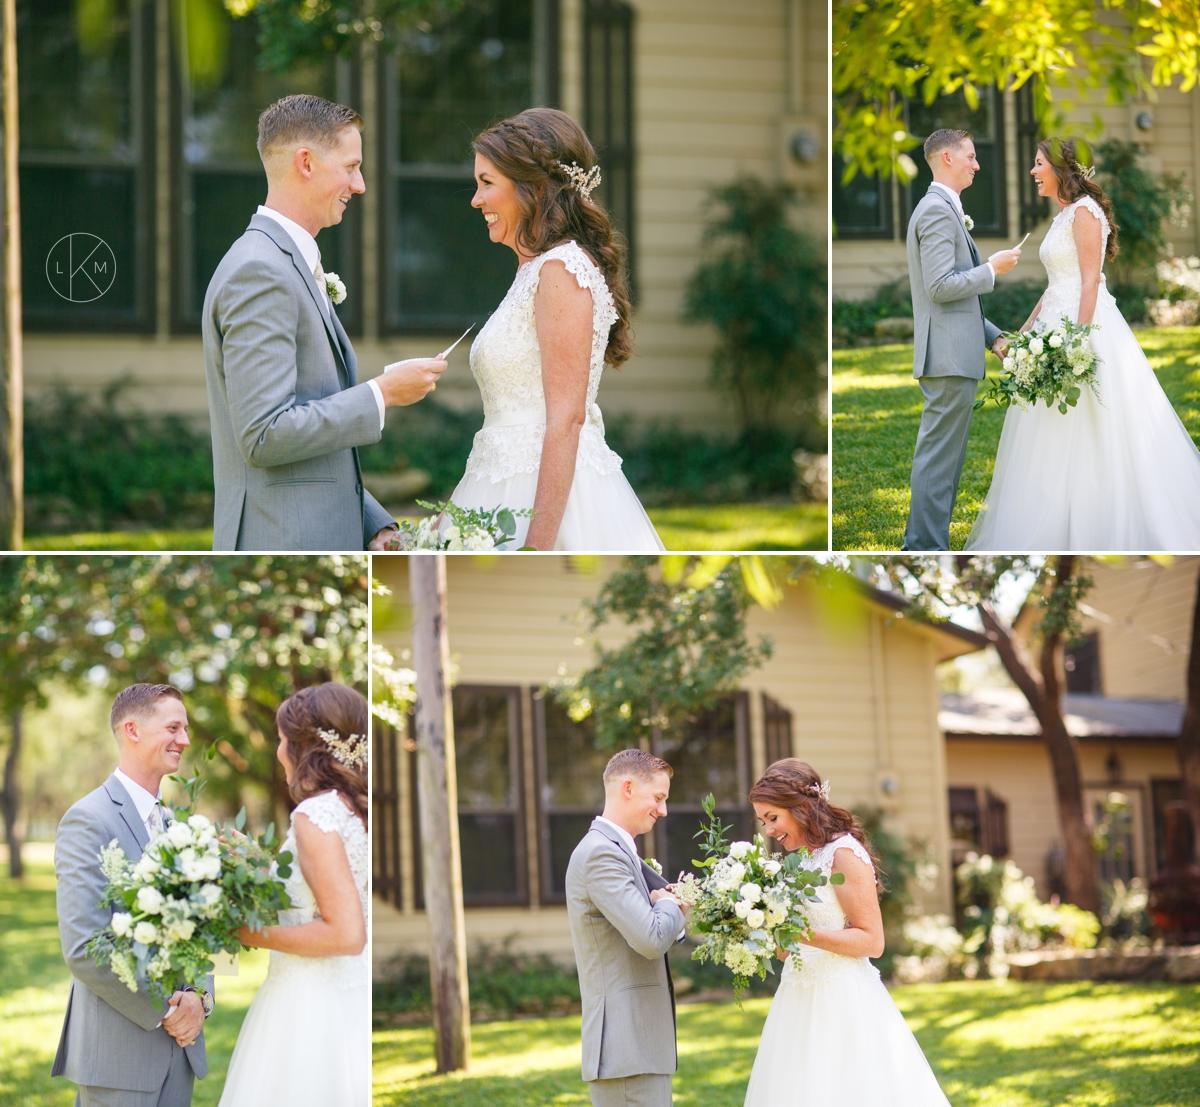 Austin-Texas-Wedding-Vista-West-Ranch-Photography-DOLLAR 23.jpg